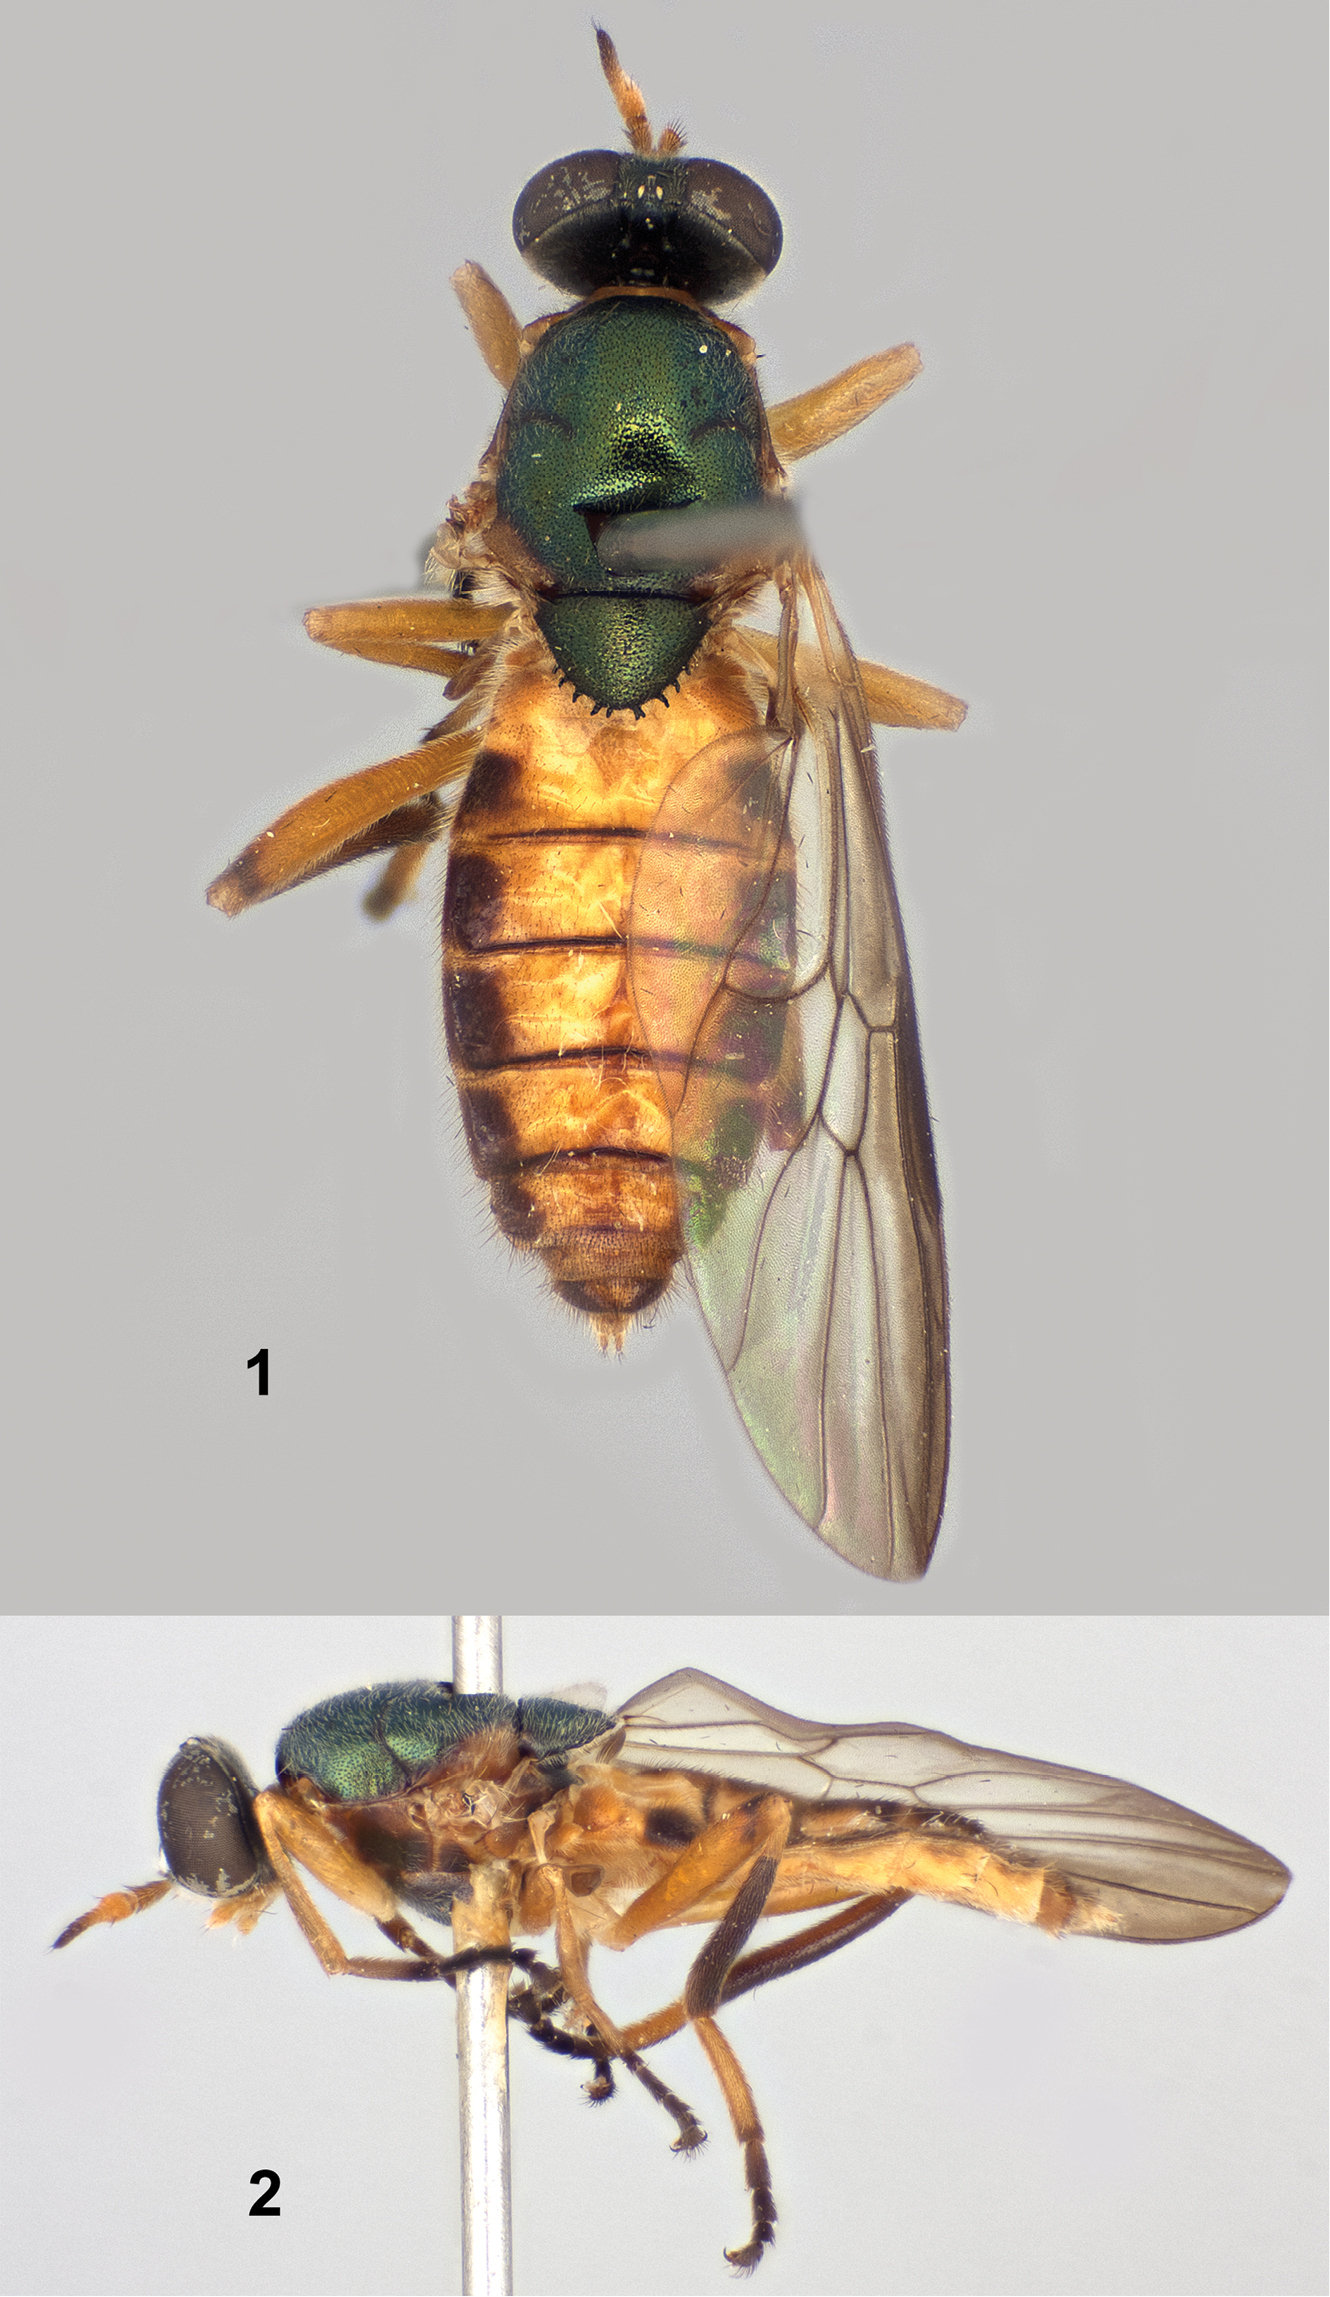 Paraberismyia chiapas Woodley - Female holotype (Figures 1 & 2 from Woodley, 2013)